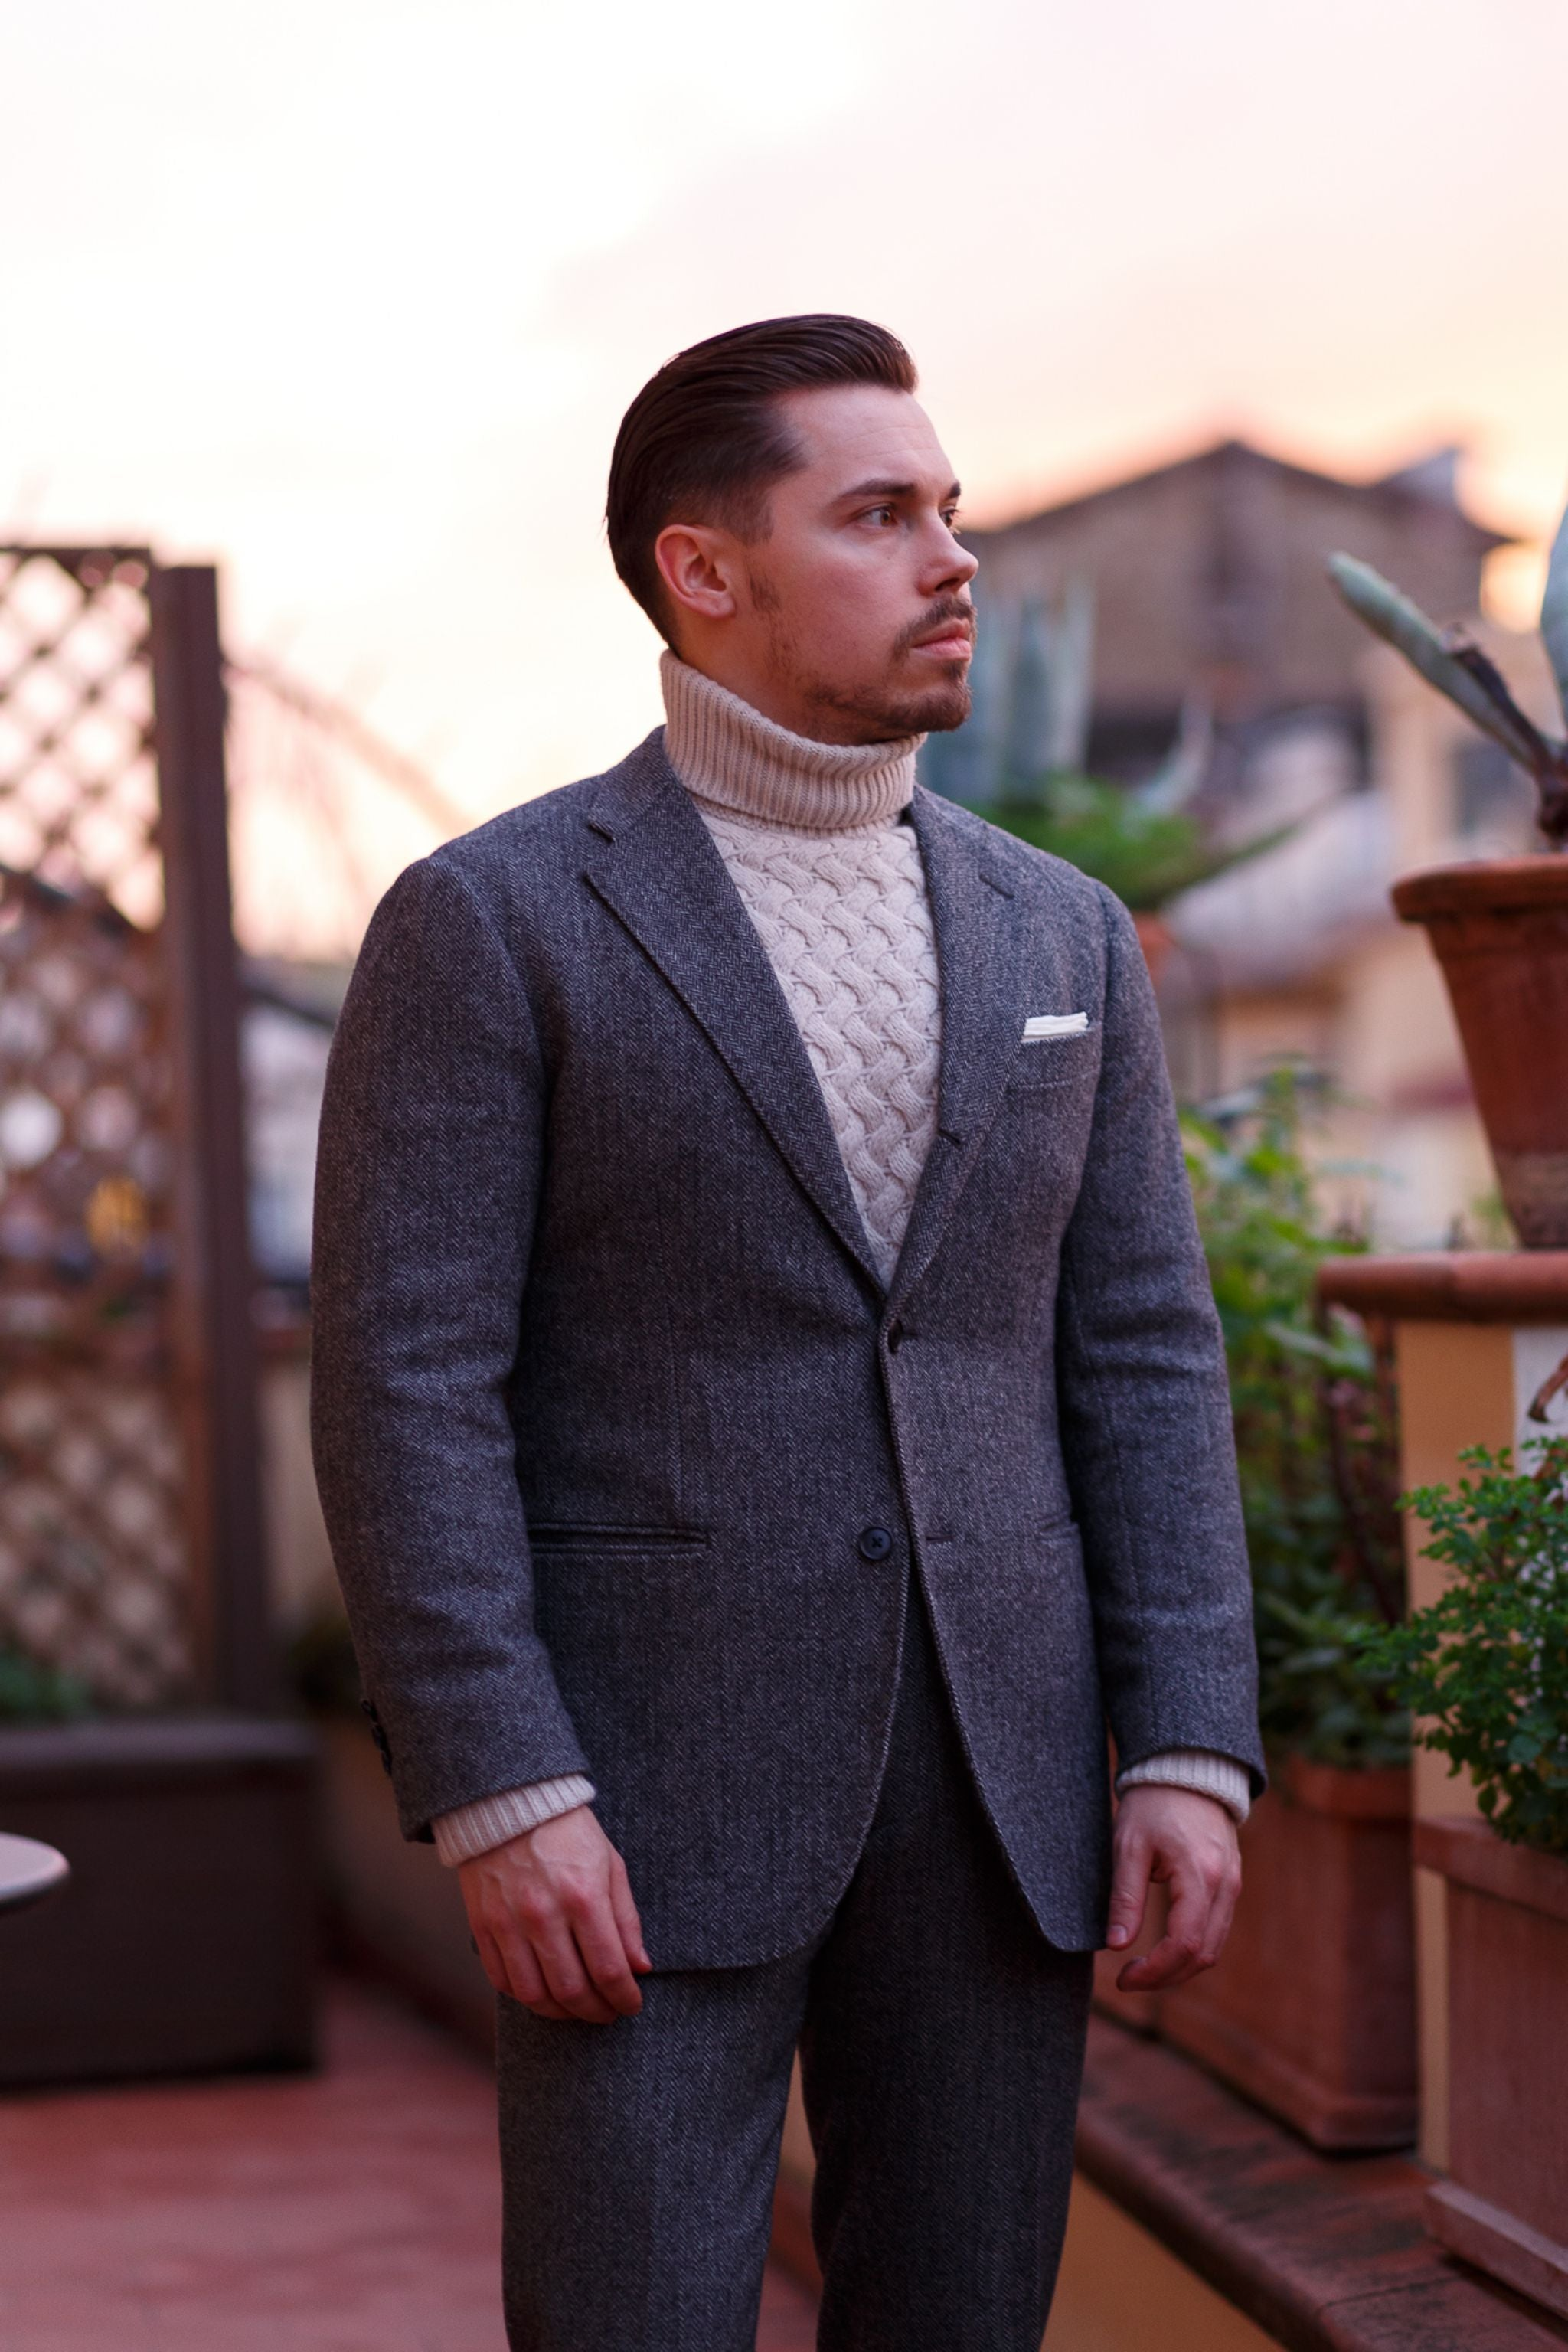 Chunky-oatmeal-colored-roll-neck-sweater-with-a-herringbone-wool-suit